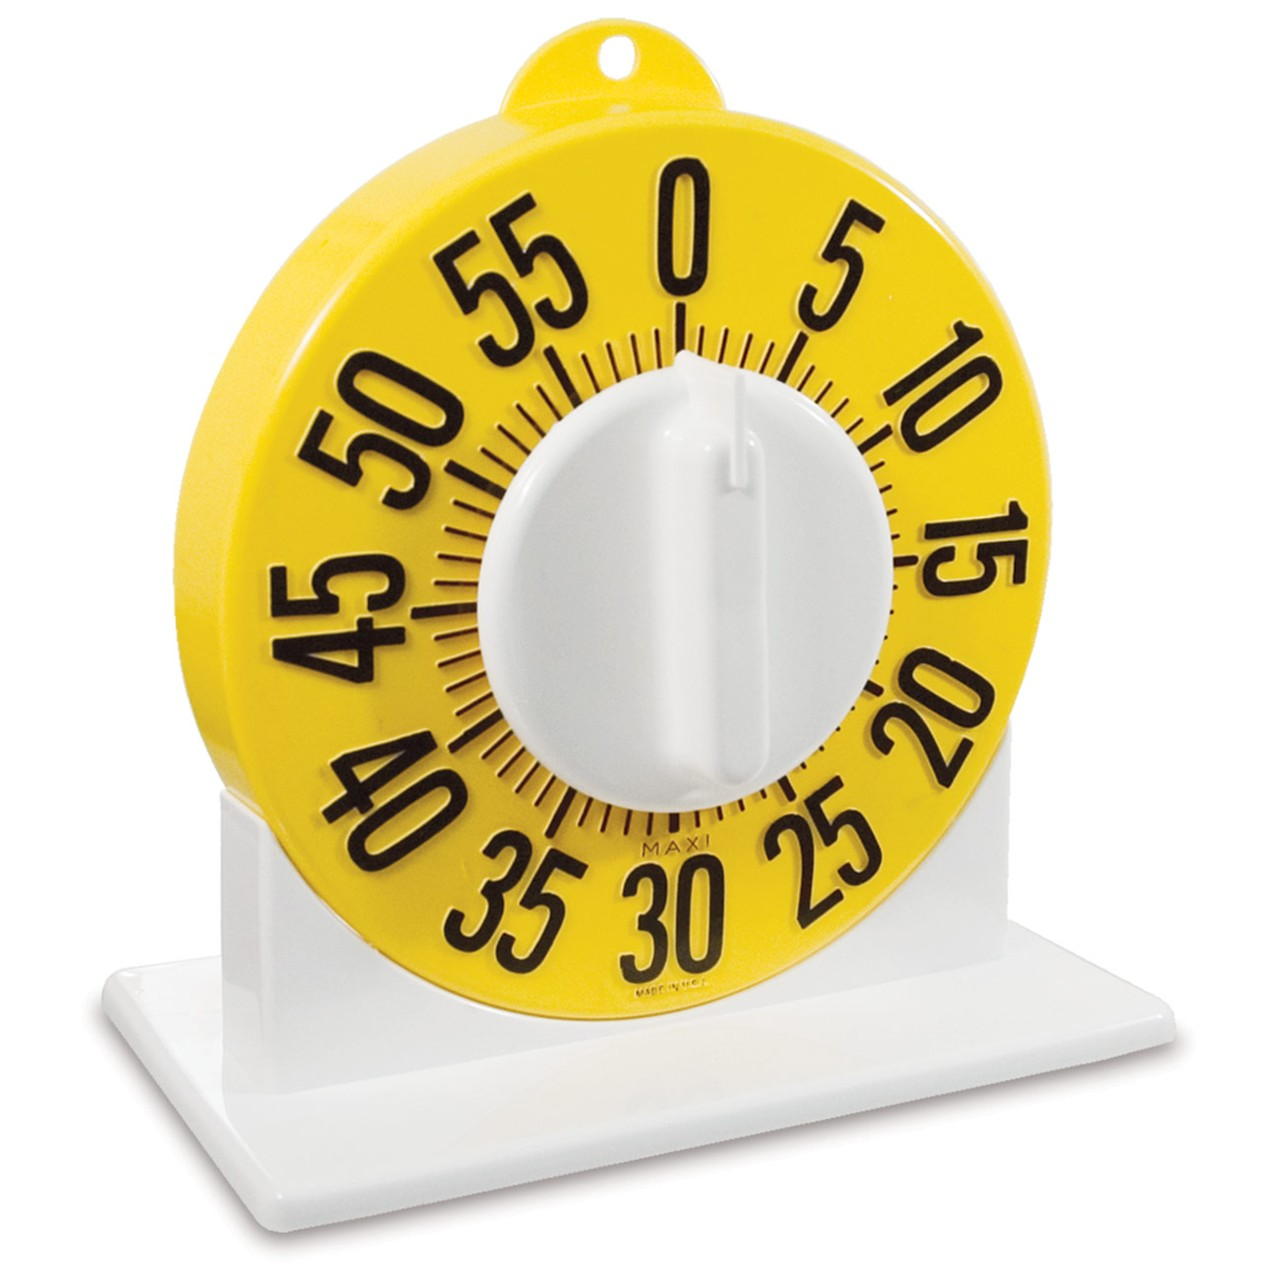 Tactile Low Vision Short Ring Timer with Stand